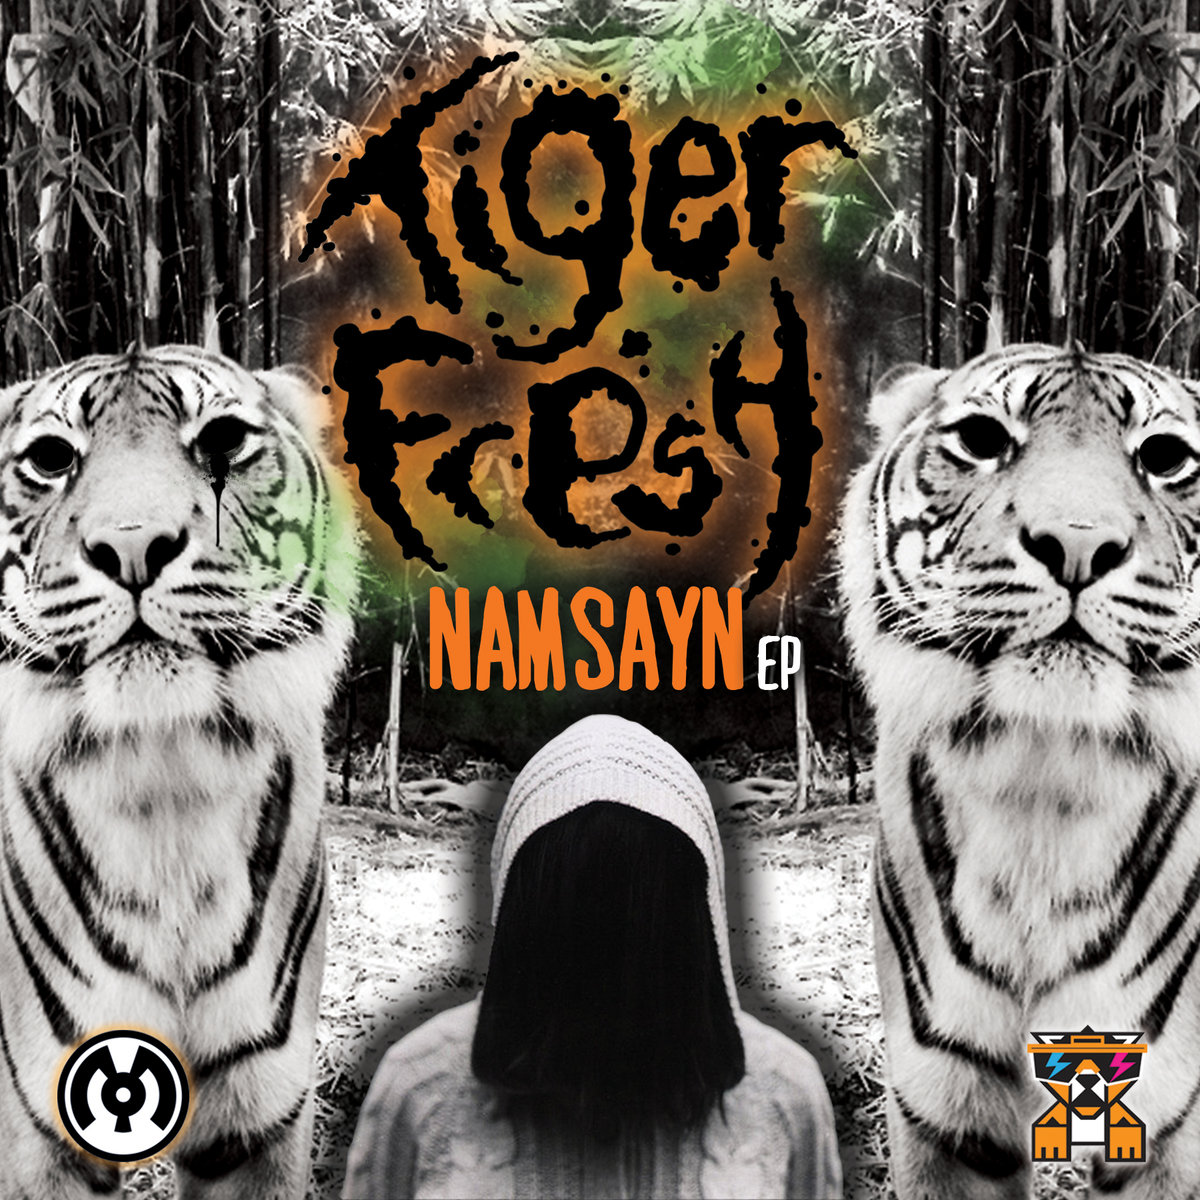 Tiger Fresh - Too Turnt Up (Sleepyhead Remix) @ 'Namsayn' album (electronic, dubstep)